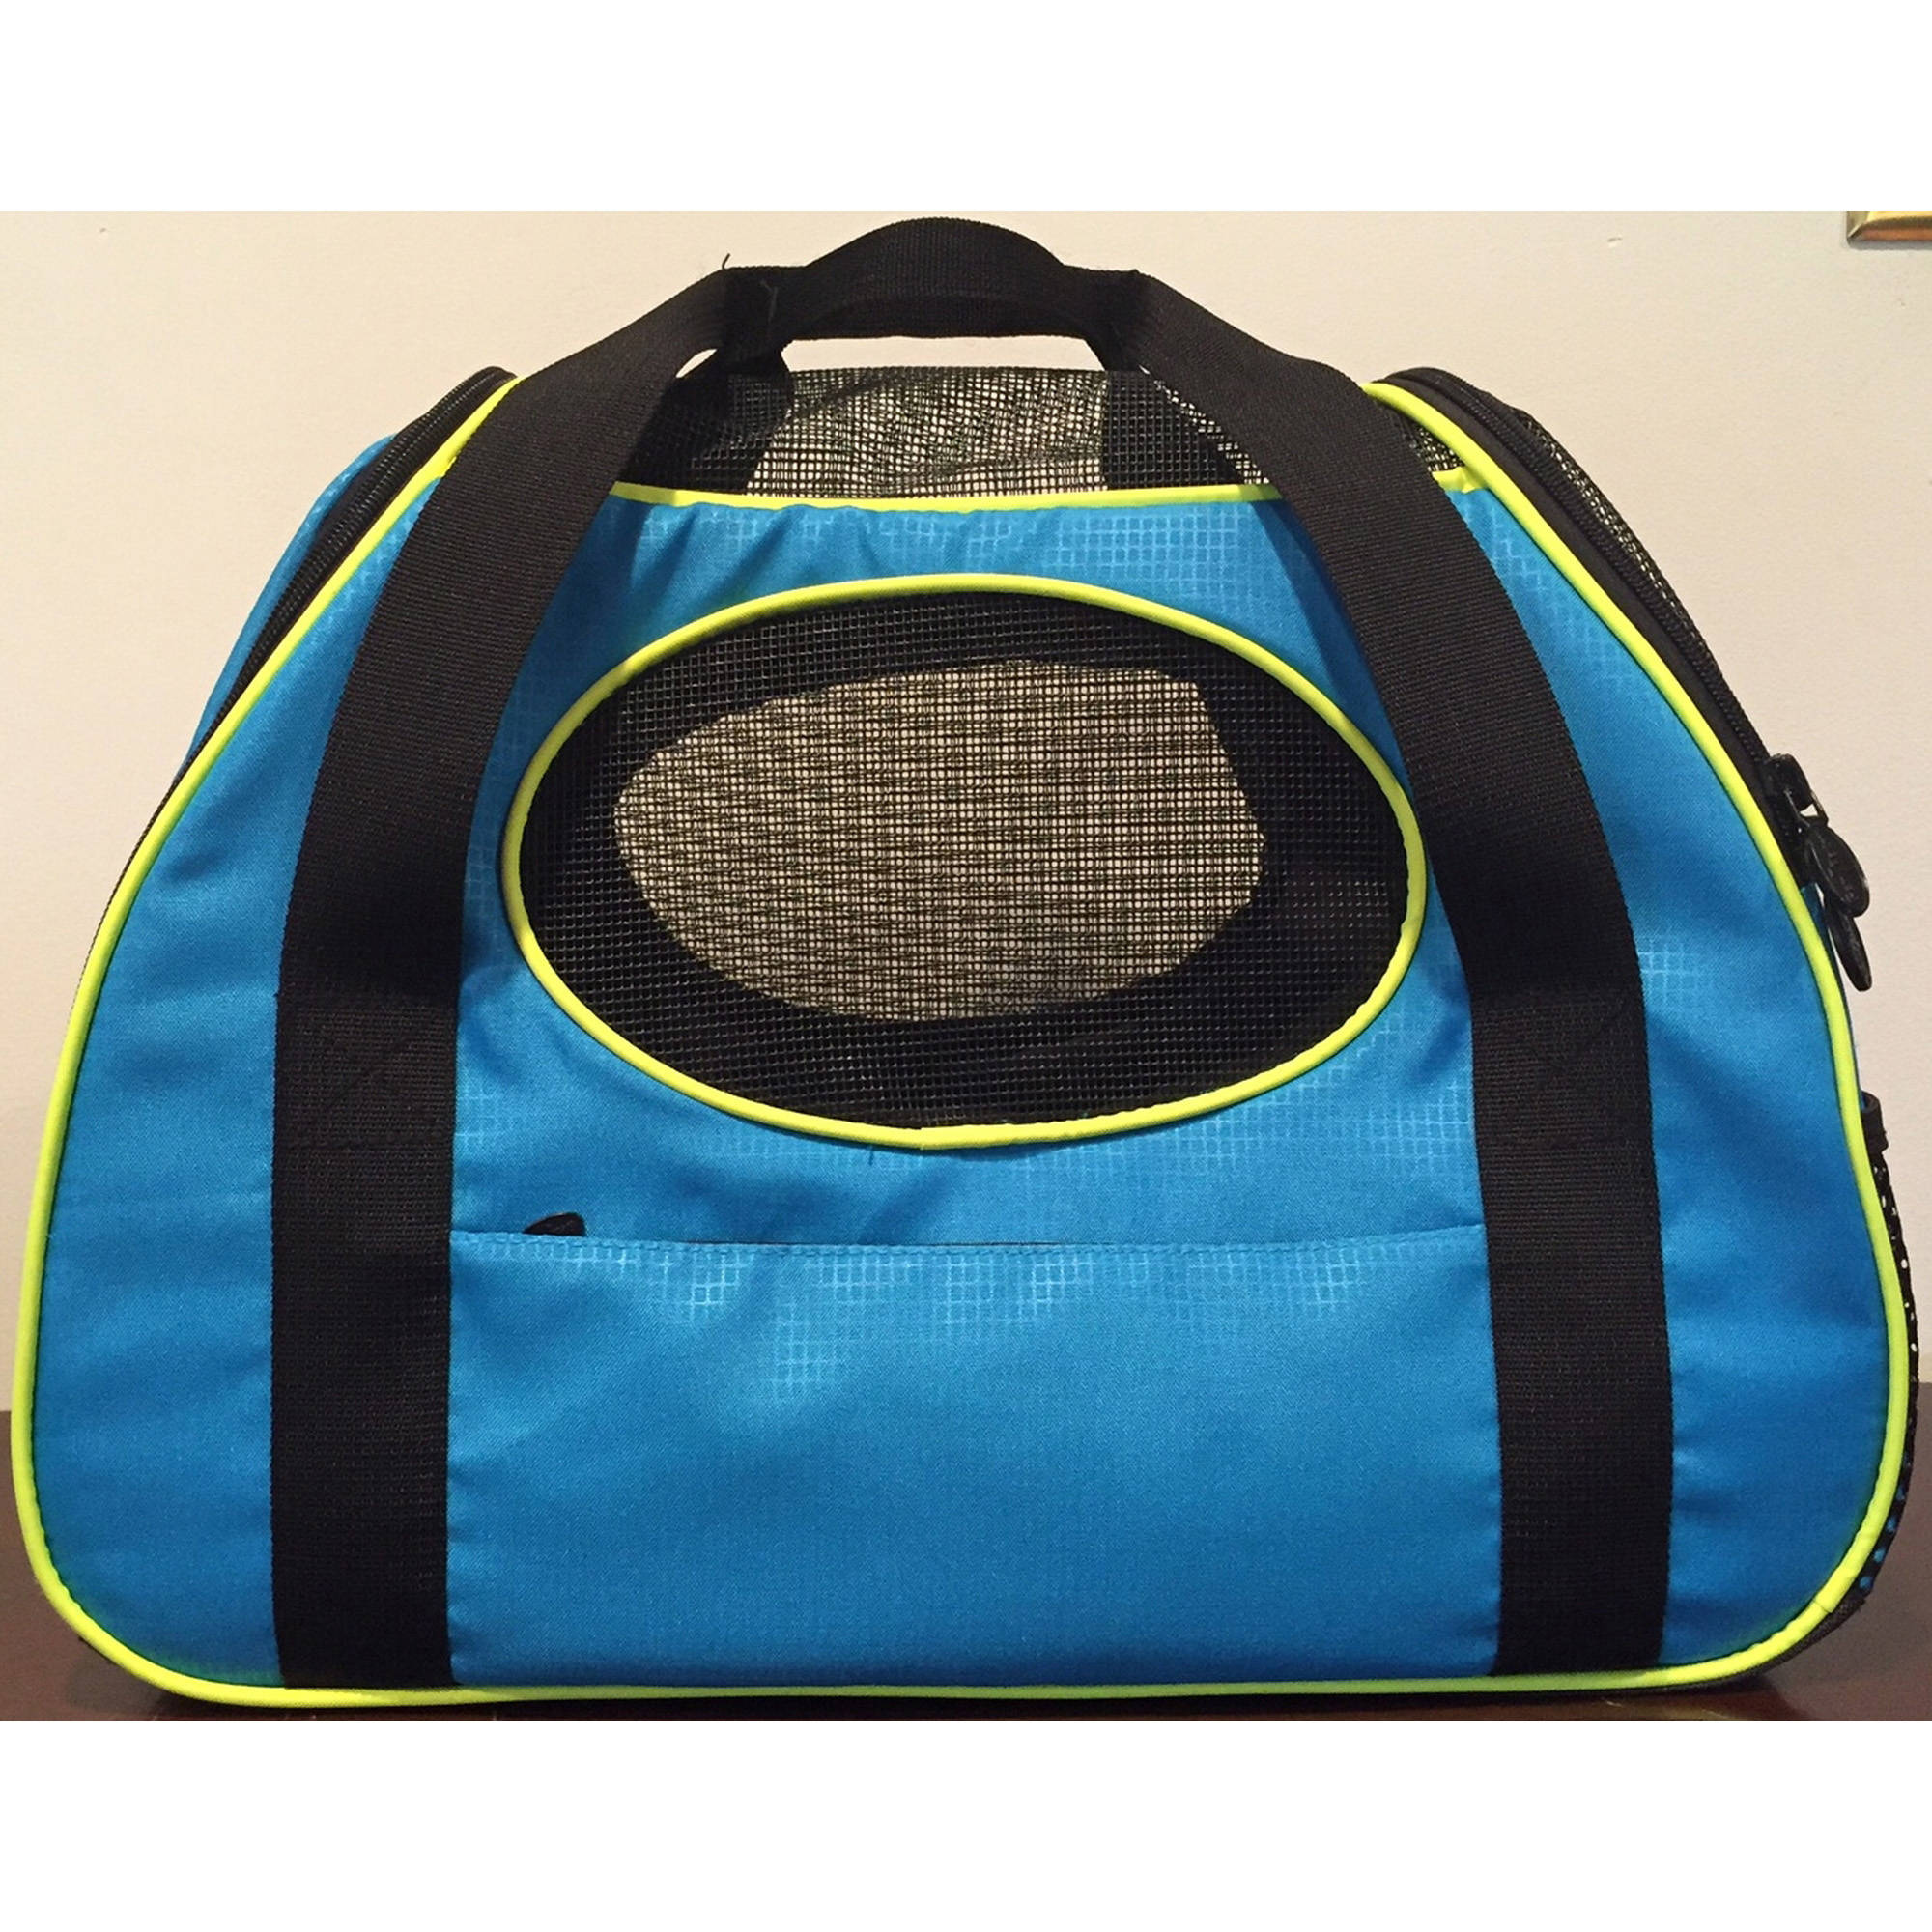 Gen7Pets Carry-Me Fashion Pet Carrier